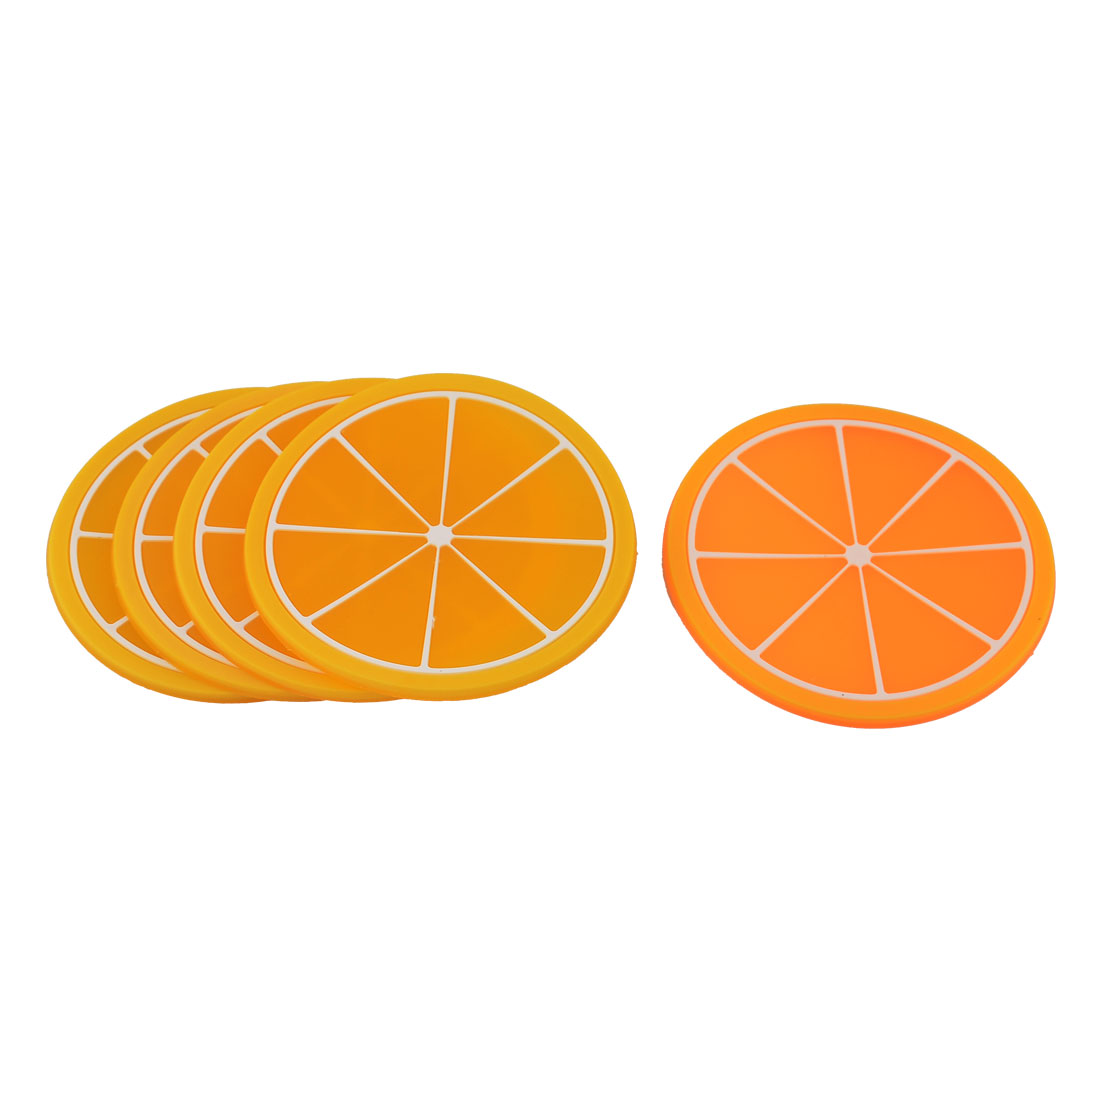 Home Silicone Octagon Shape Heat Resistant Table Cup Mats Pad Orange 5pcs